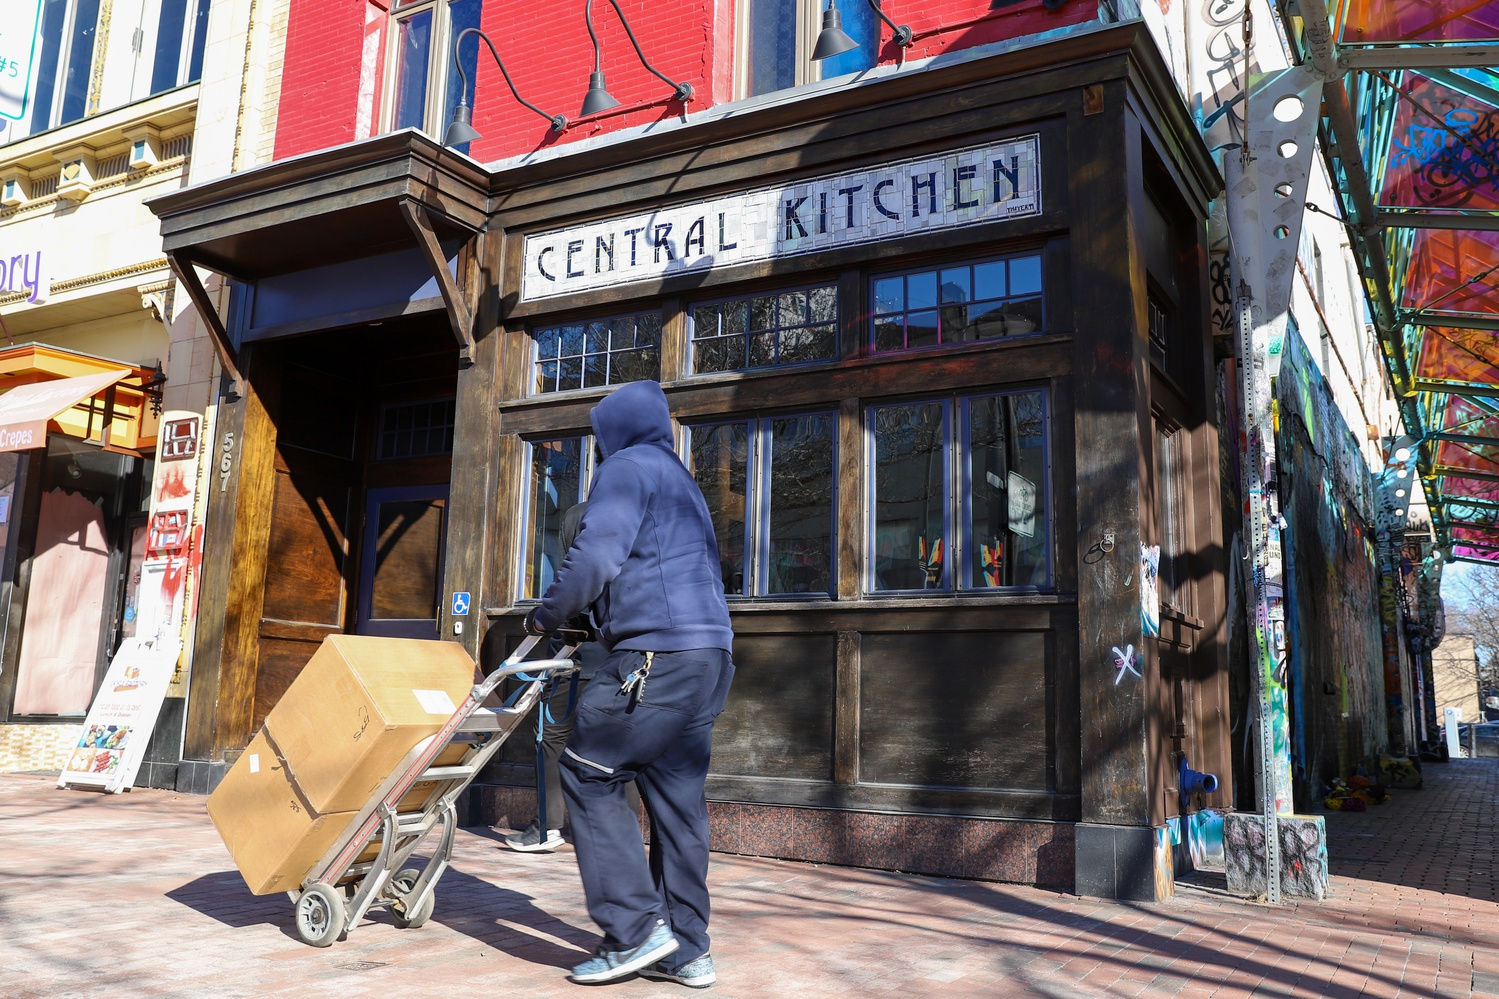 Central Kitchen, a bar and eatery in Cambridge's Central Square, is being replaced by Western Front, a marijuana dispensary.